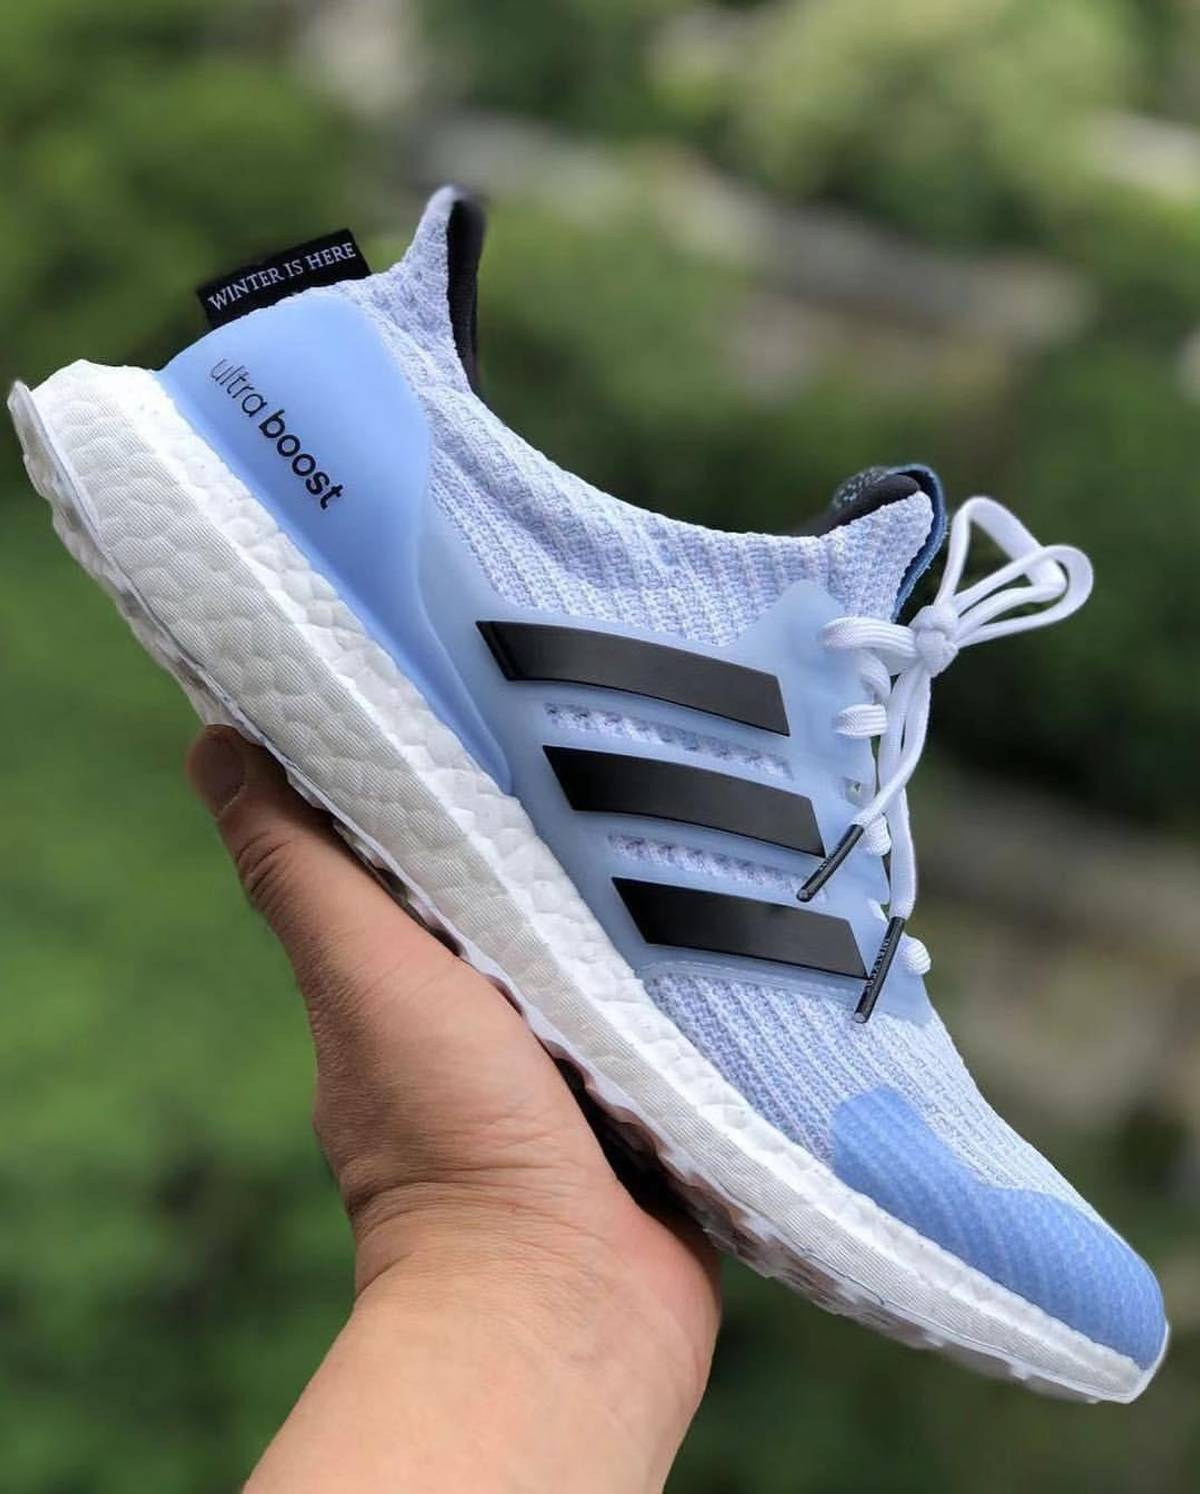 Adidas Game Of Thrones X Ultra Boost 4.0 White Walkers Size 11 $283